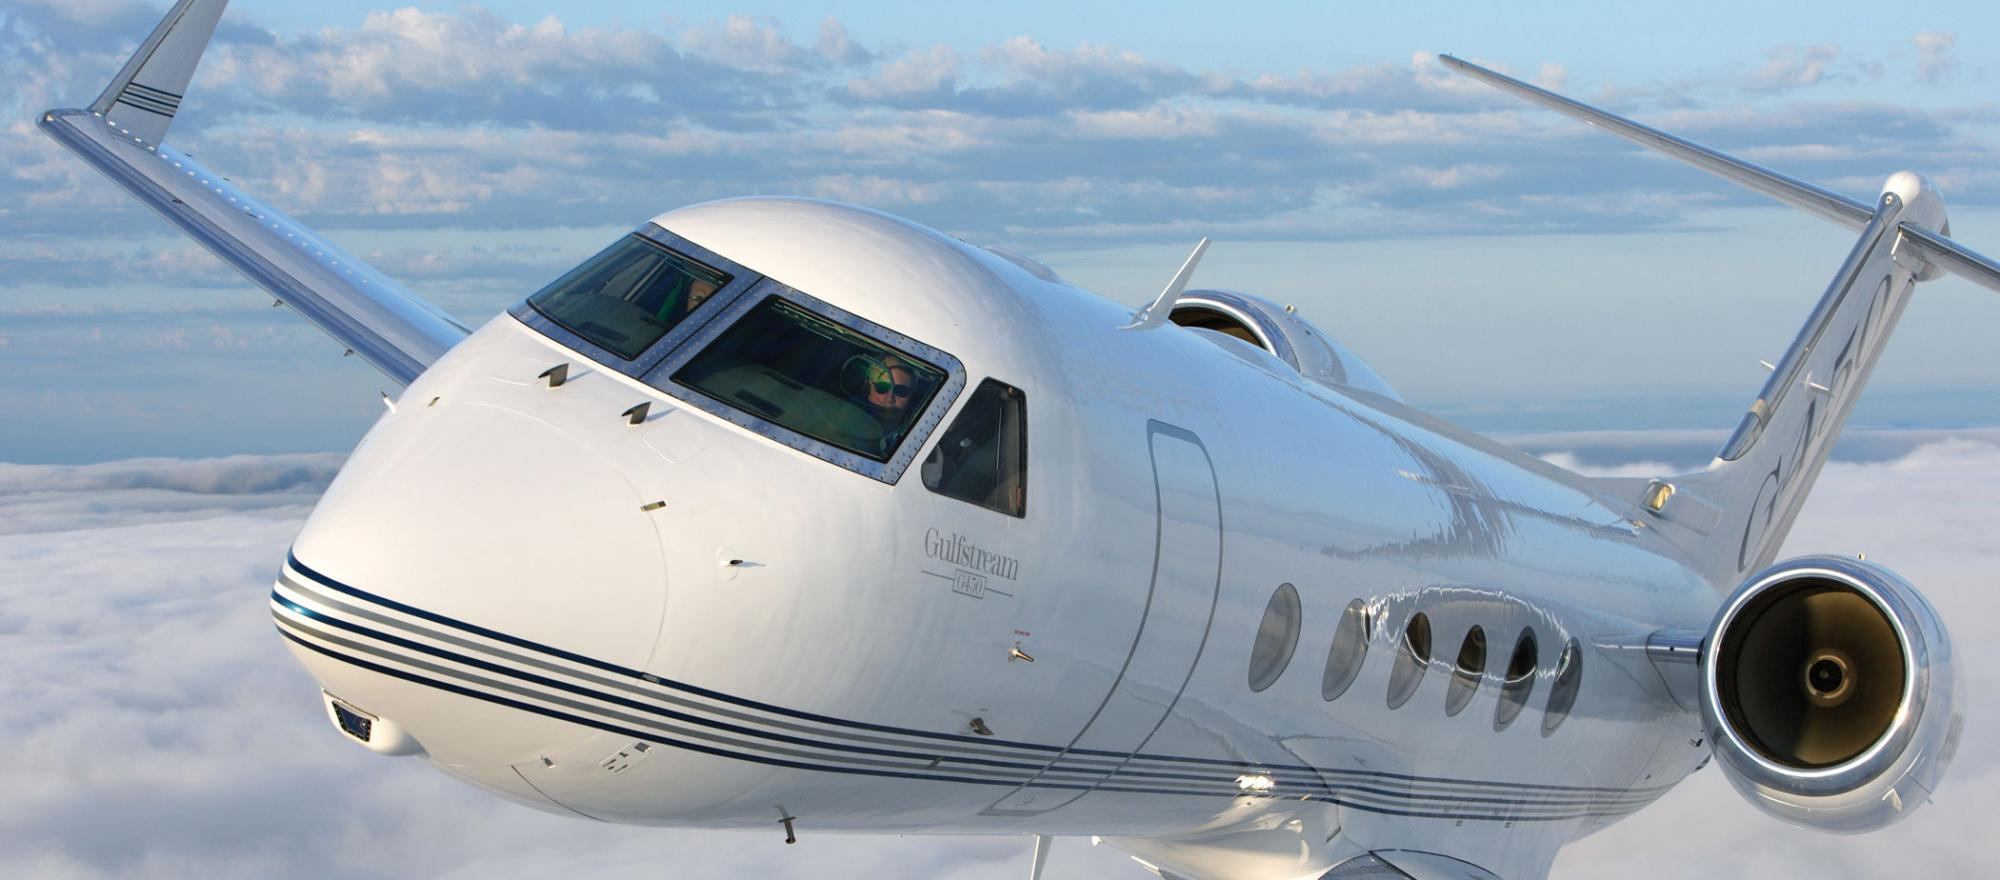 Owning and operating a Gulfstream G450 can cost $9,500 to $15,500 an hour or even more, depending on the depreciation method and the number of hours flown. Yet you can charter a fairly new one for about $5,600 an hour.